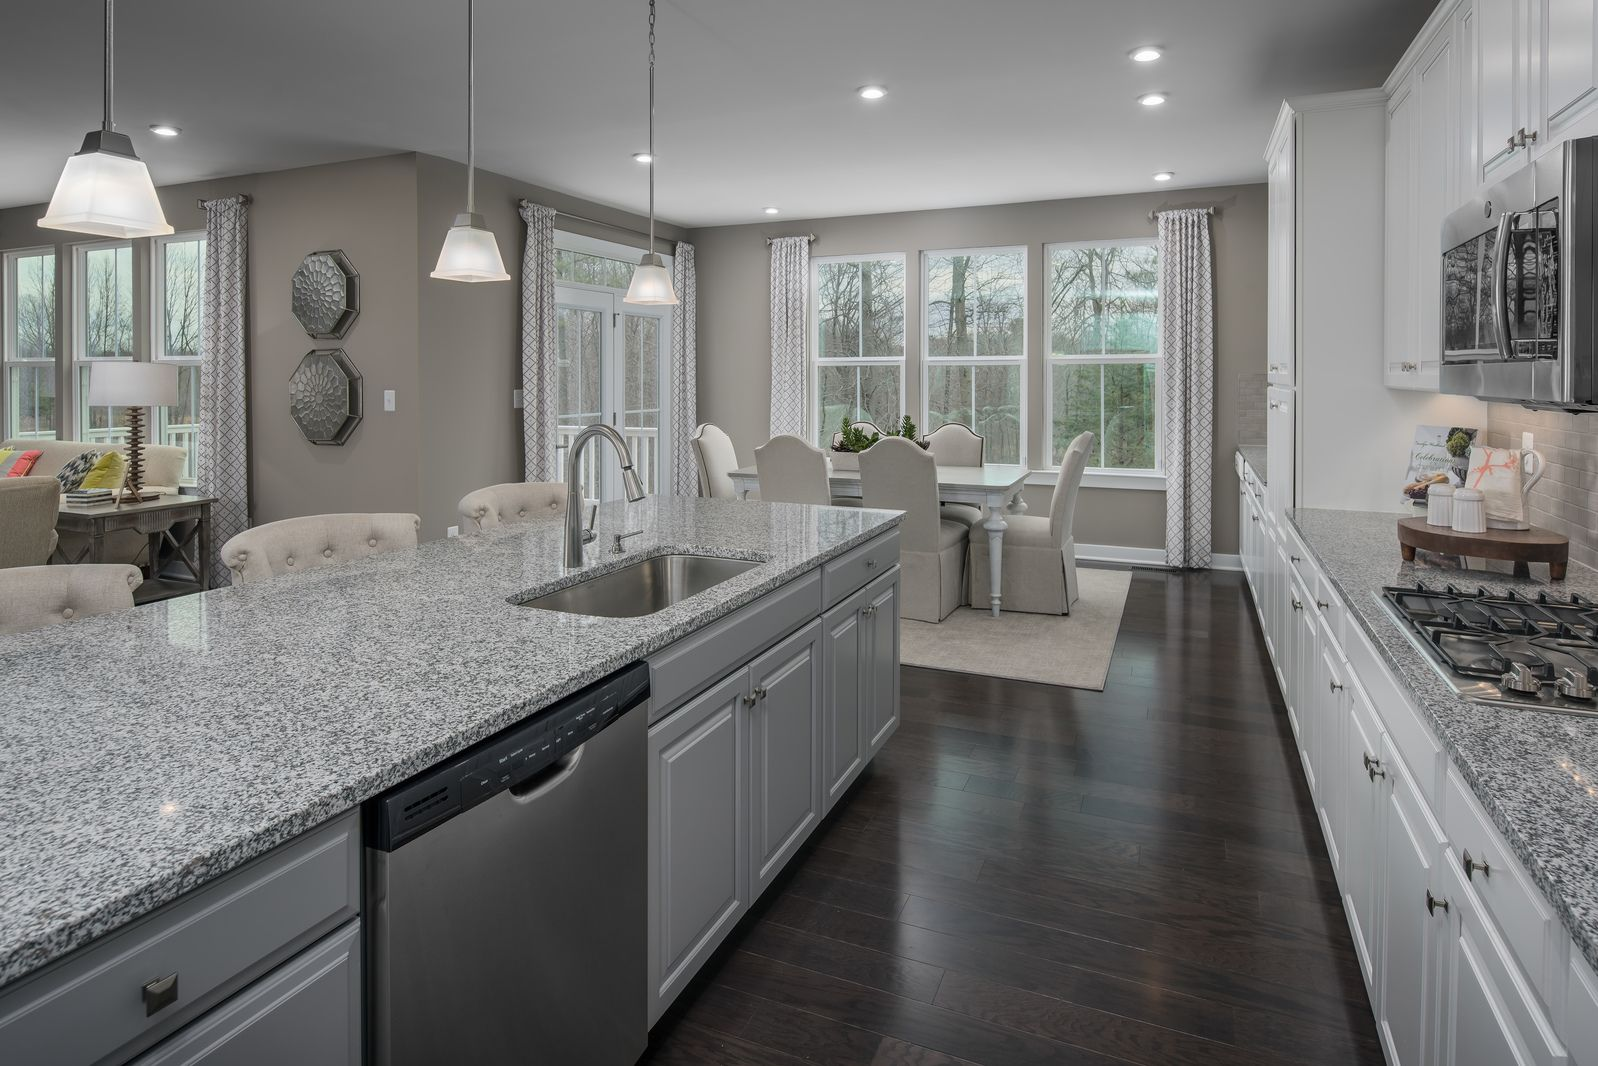 Kitchen featured in the Landon By HeartlandHomes in Morgantown, WV